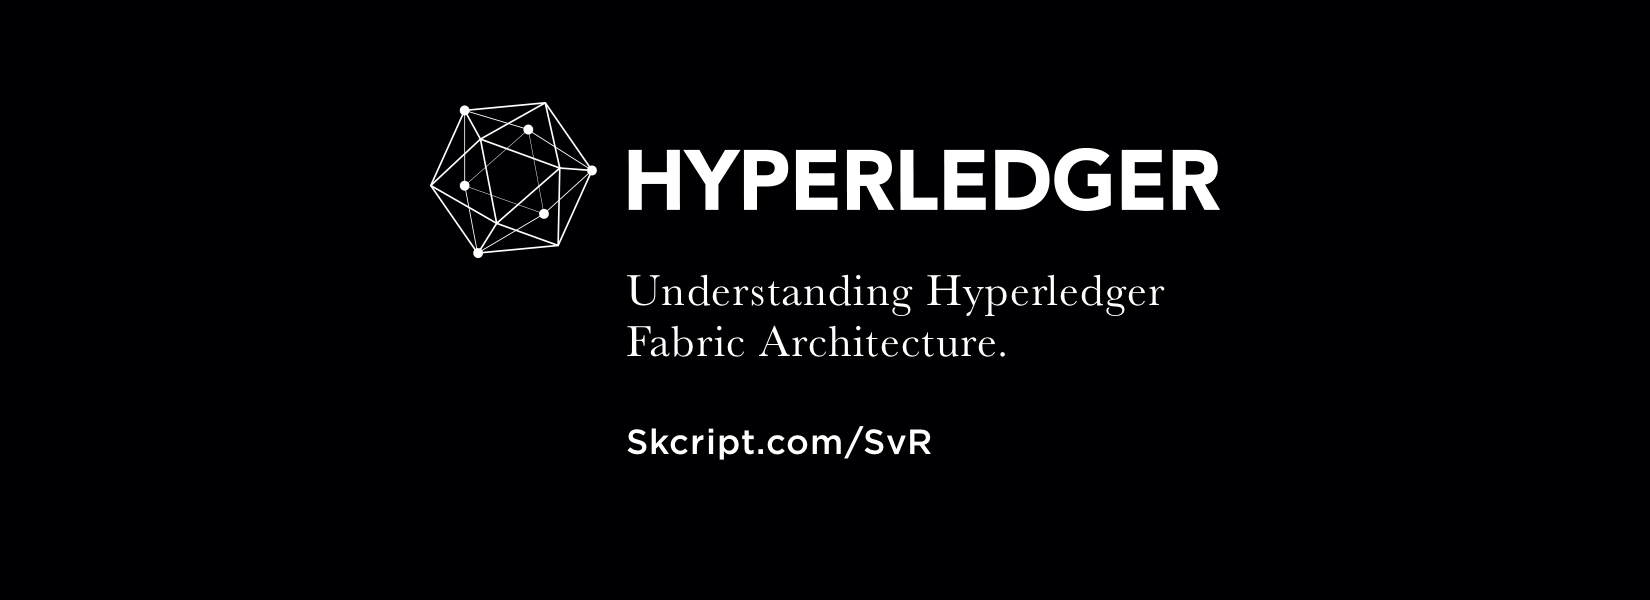 Hyperledger Fabric Architecture: Explained in detail